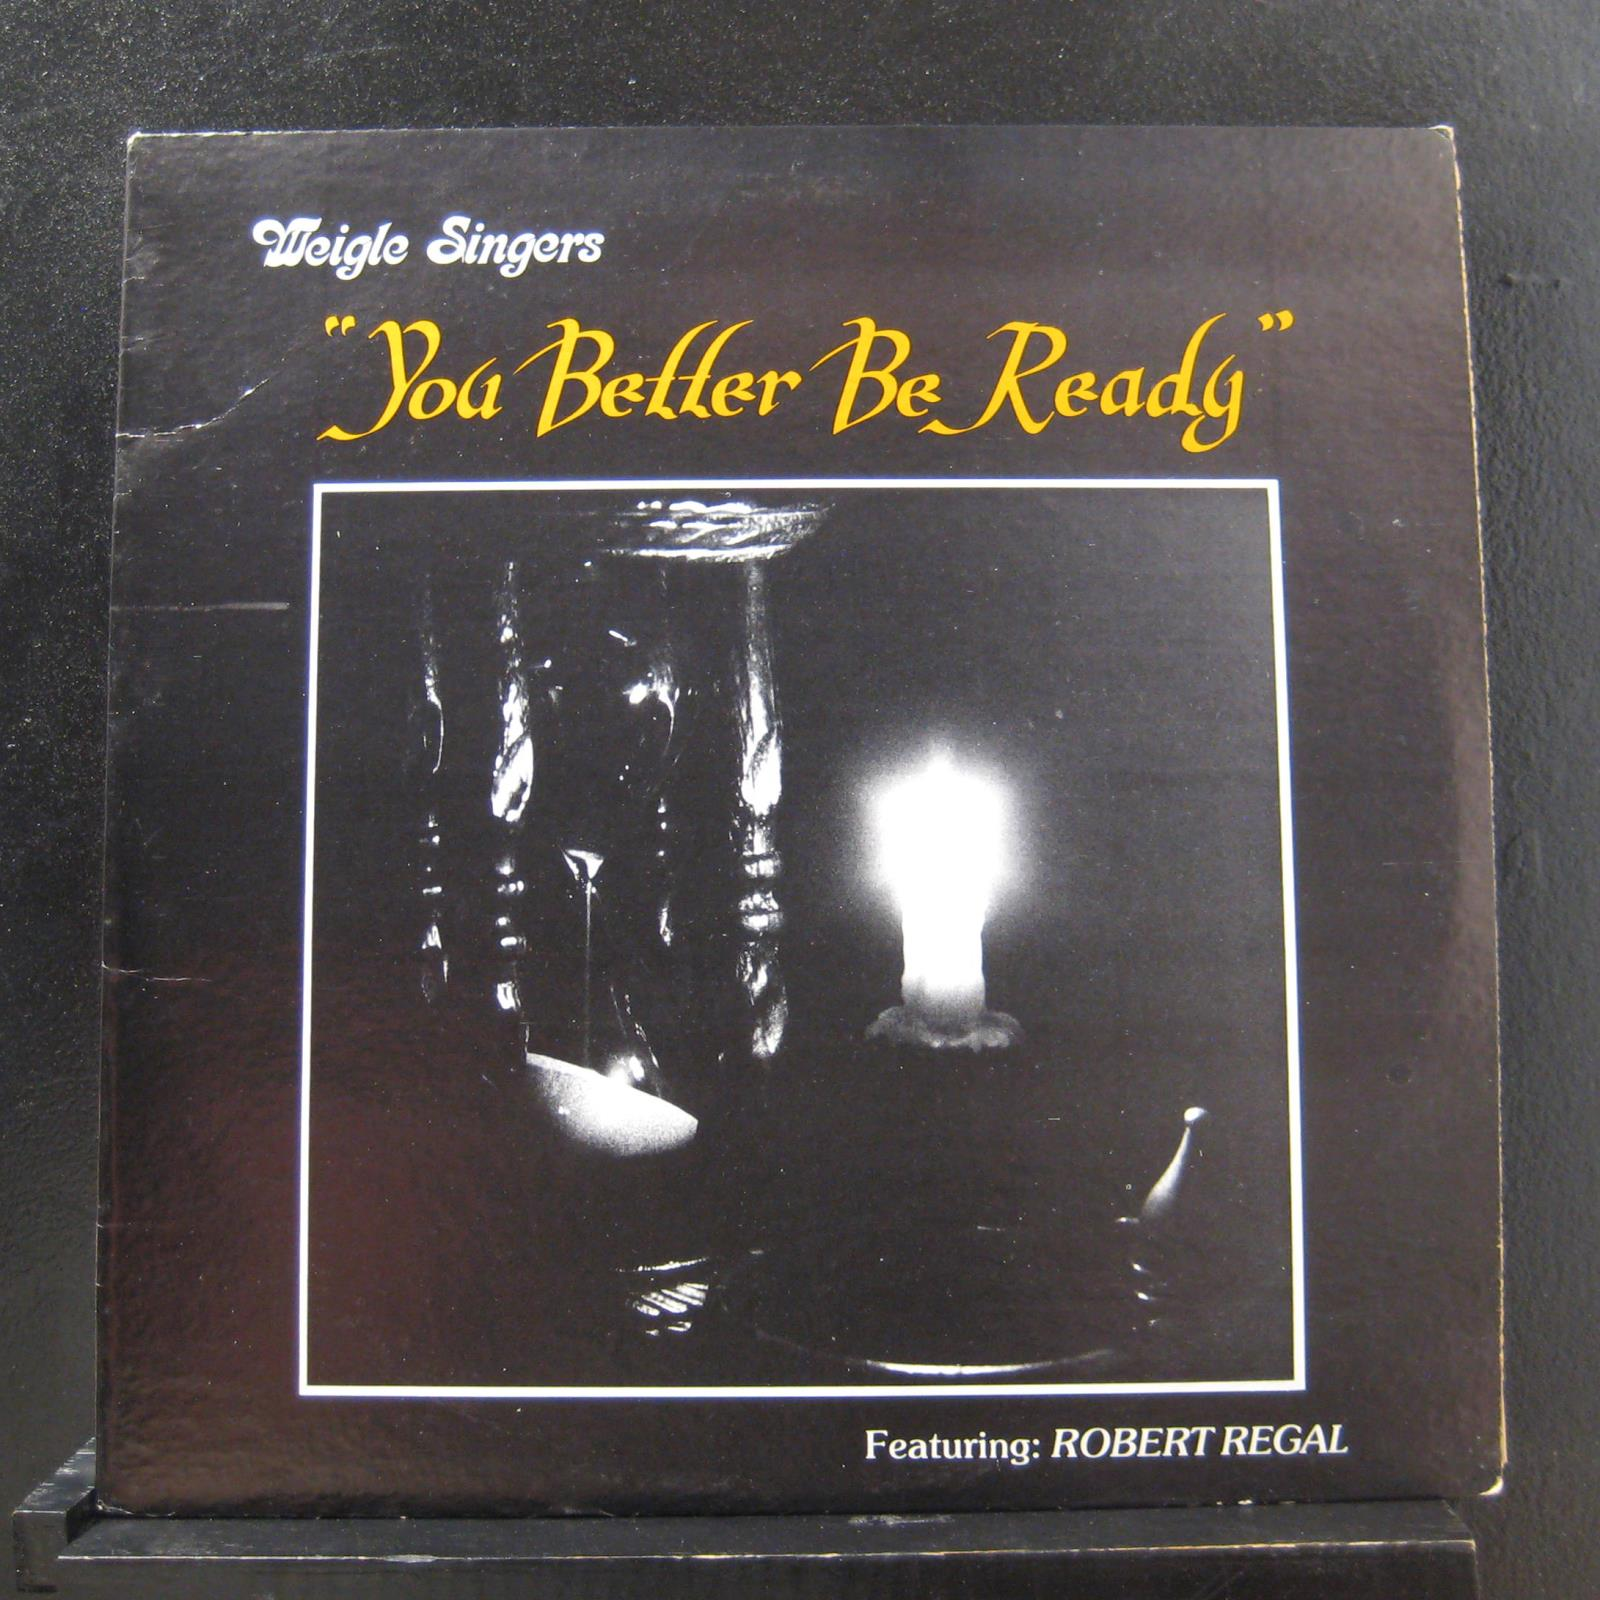 Lp Regal Weigle Singers Ft Robert Regal You Better Be Ready Lp Mint Tts